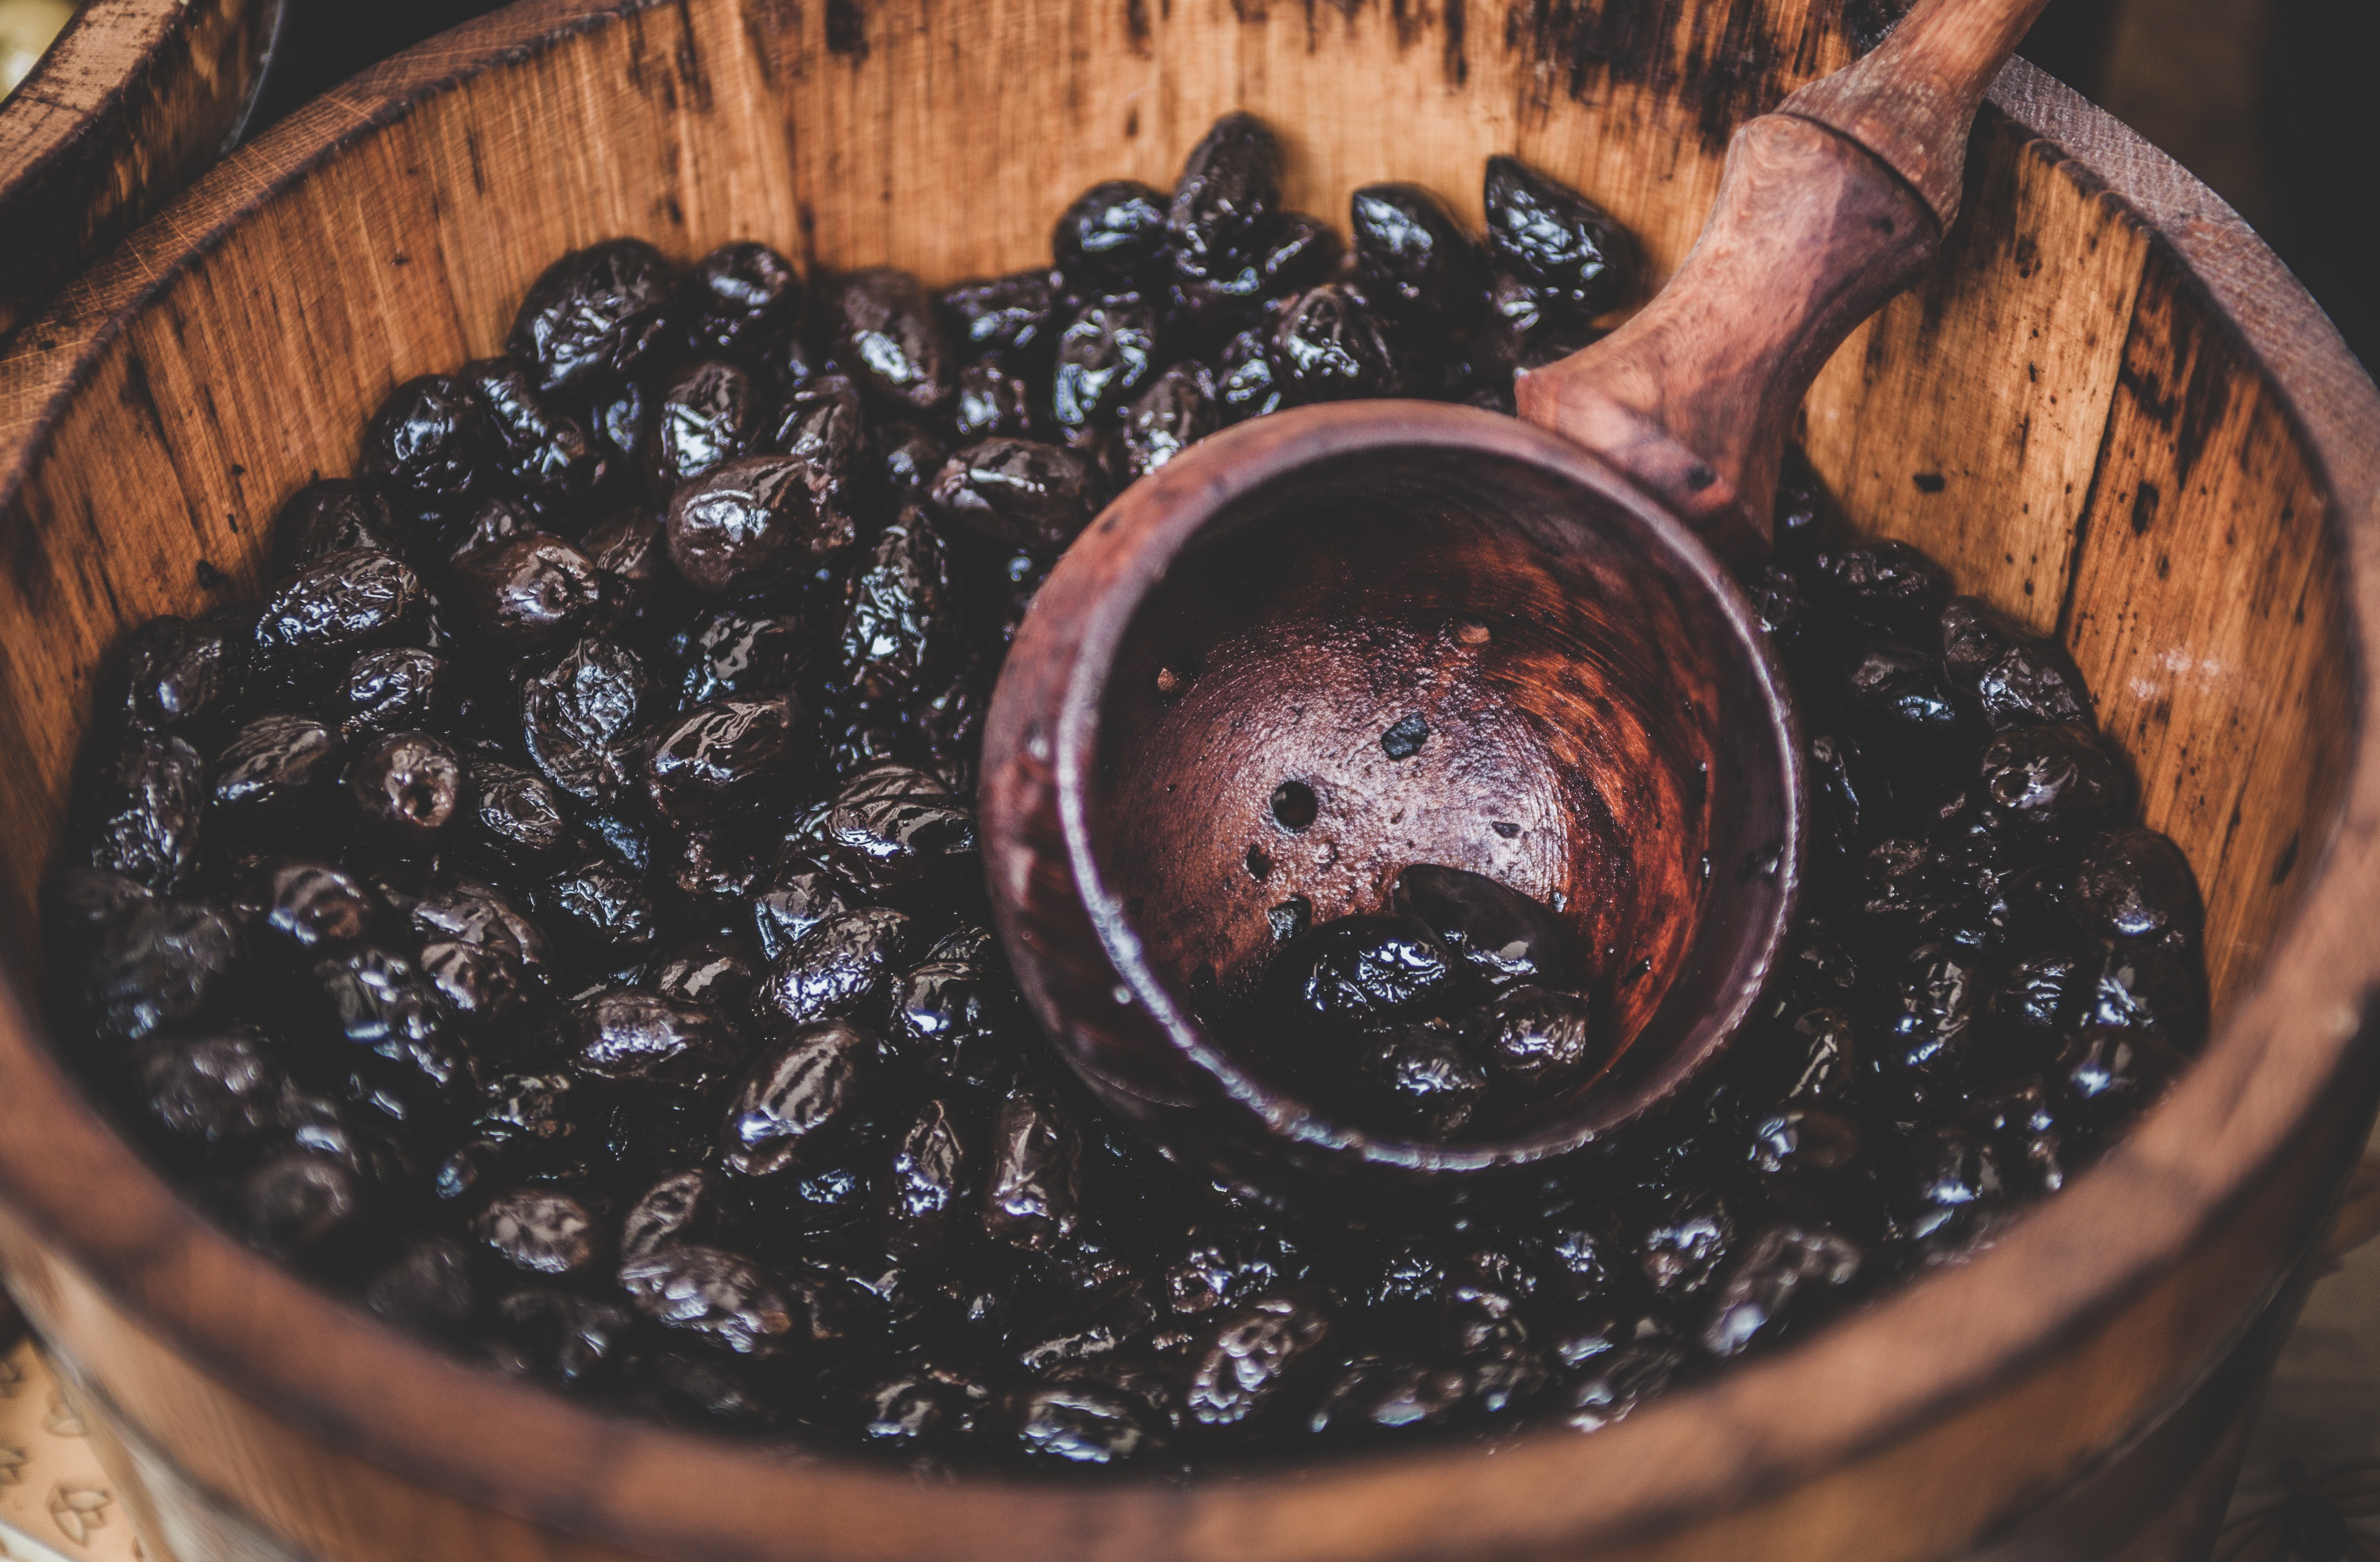 A close-up of a bucket full of cocoa beans and a wooden ladle in Cambridge.